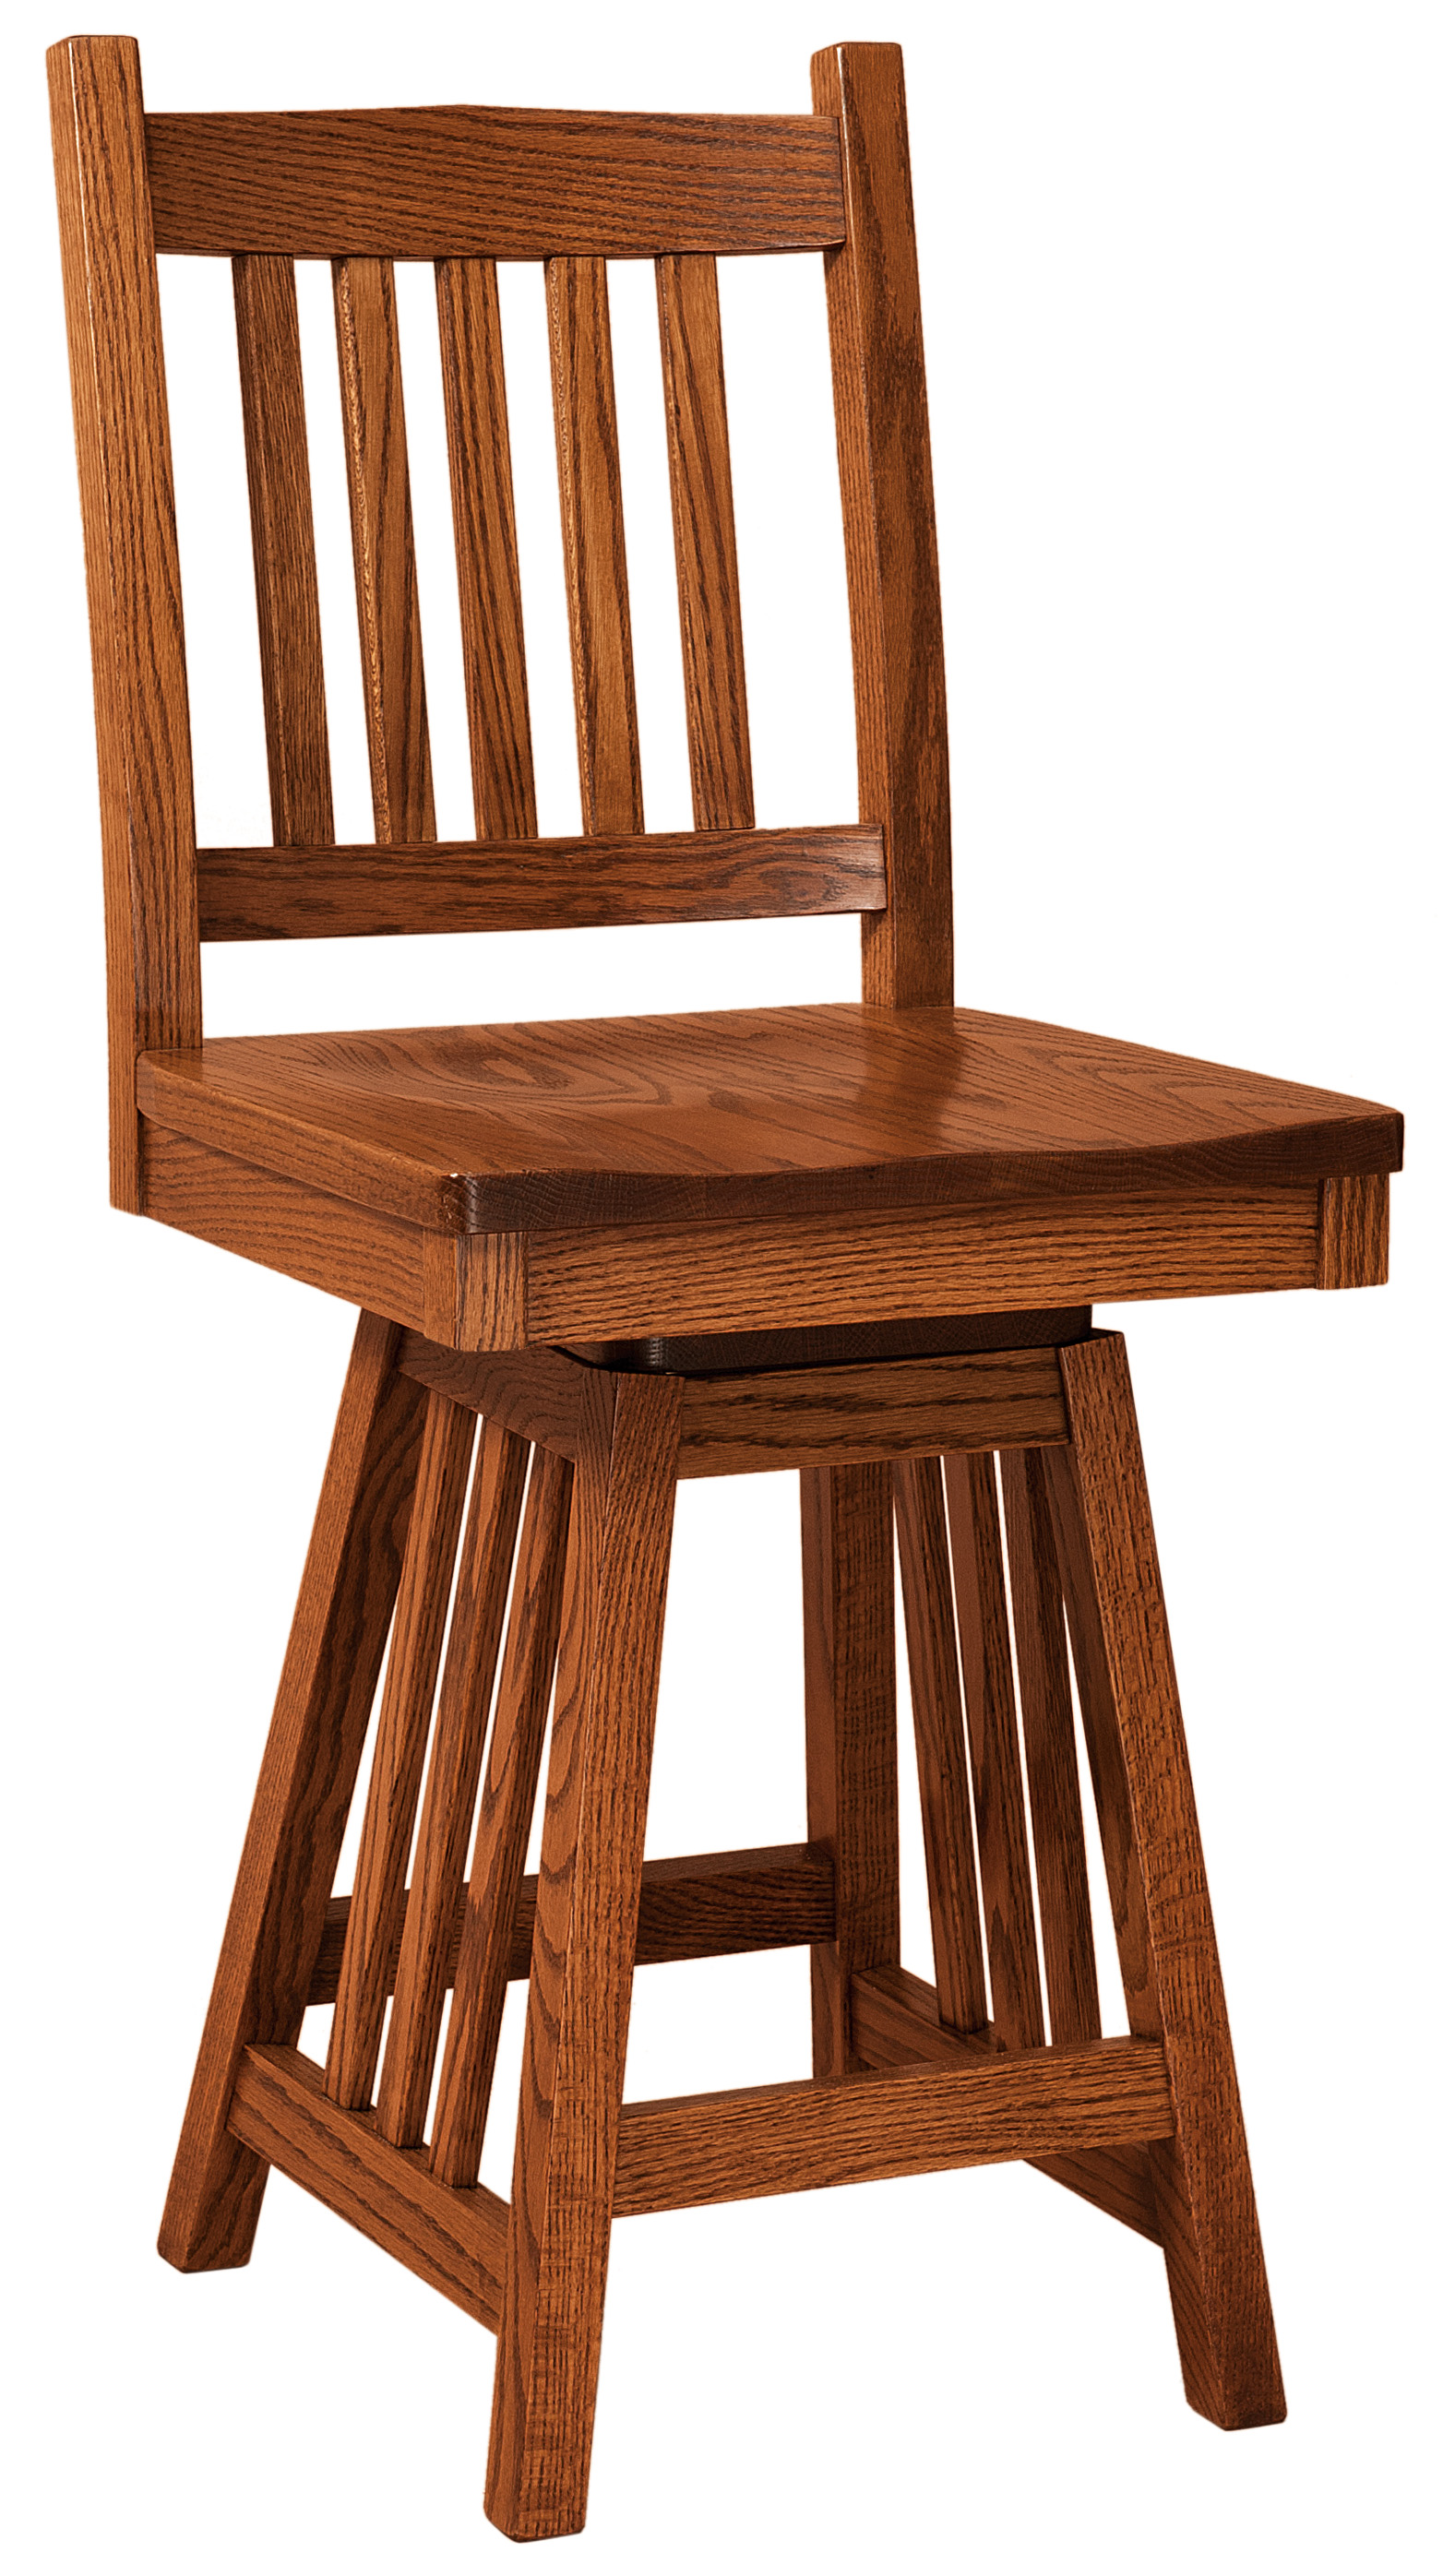 Mission Chair – Wheatstate Wood Design